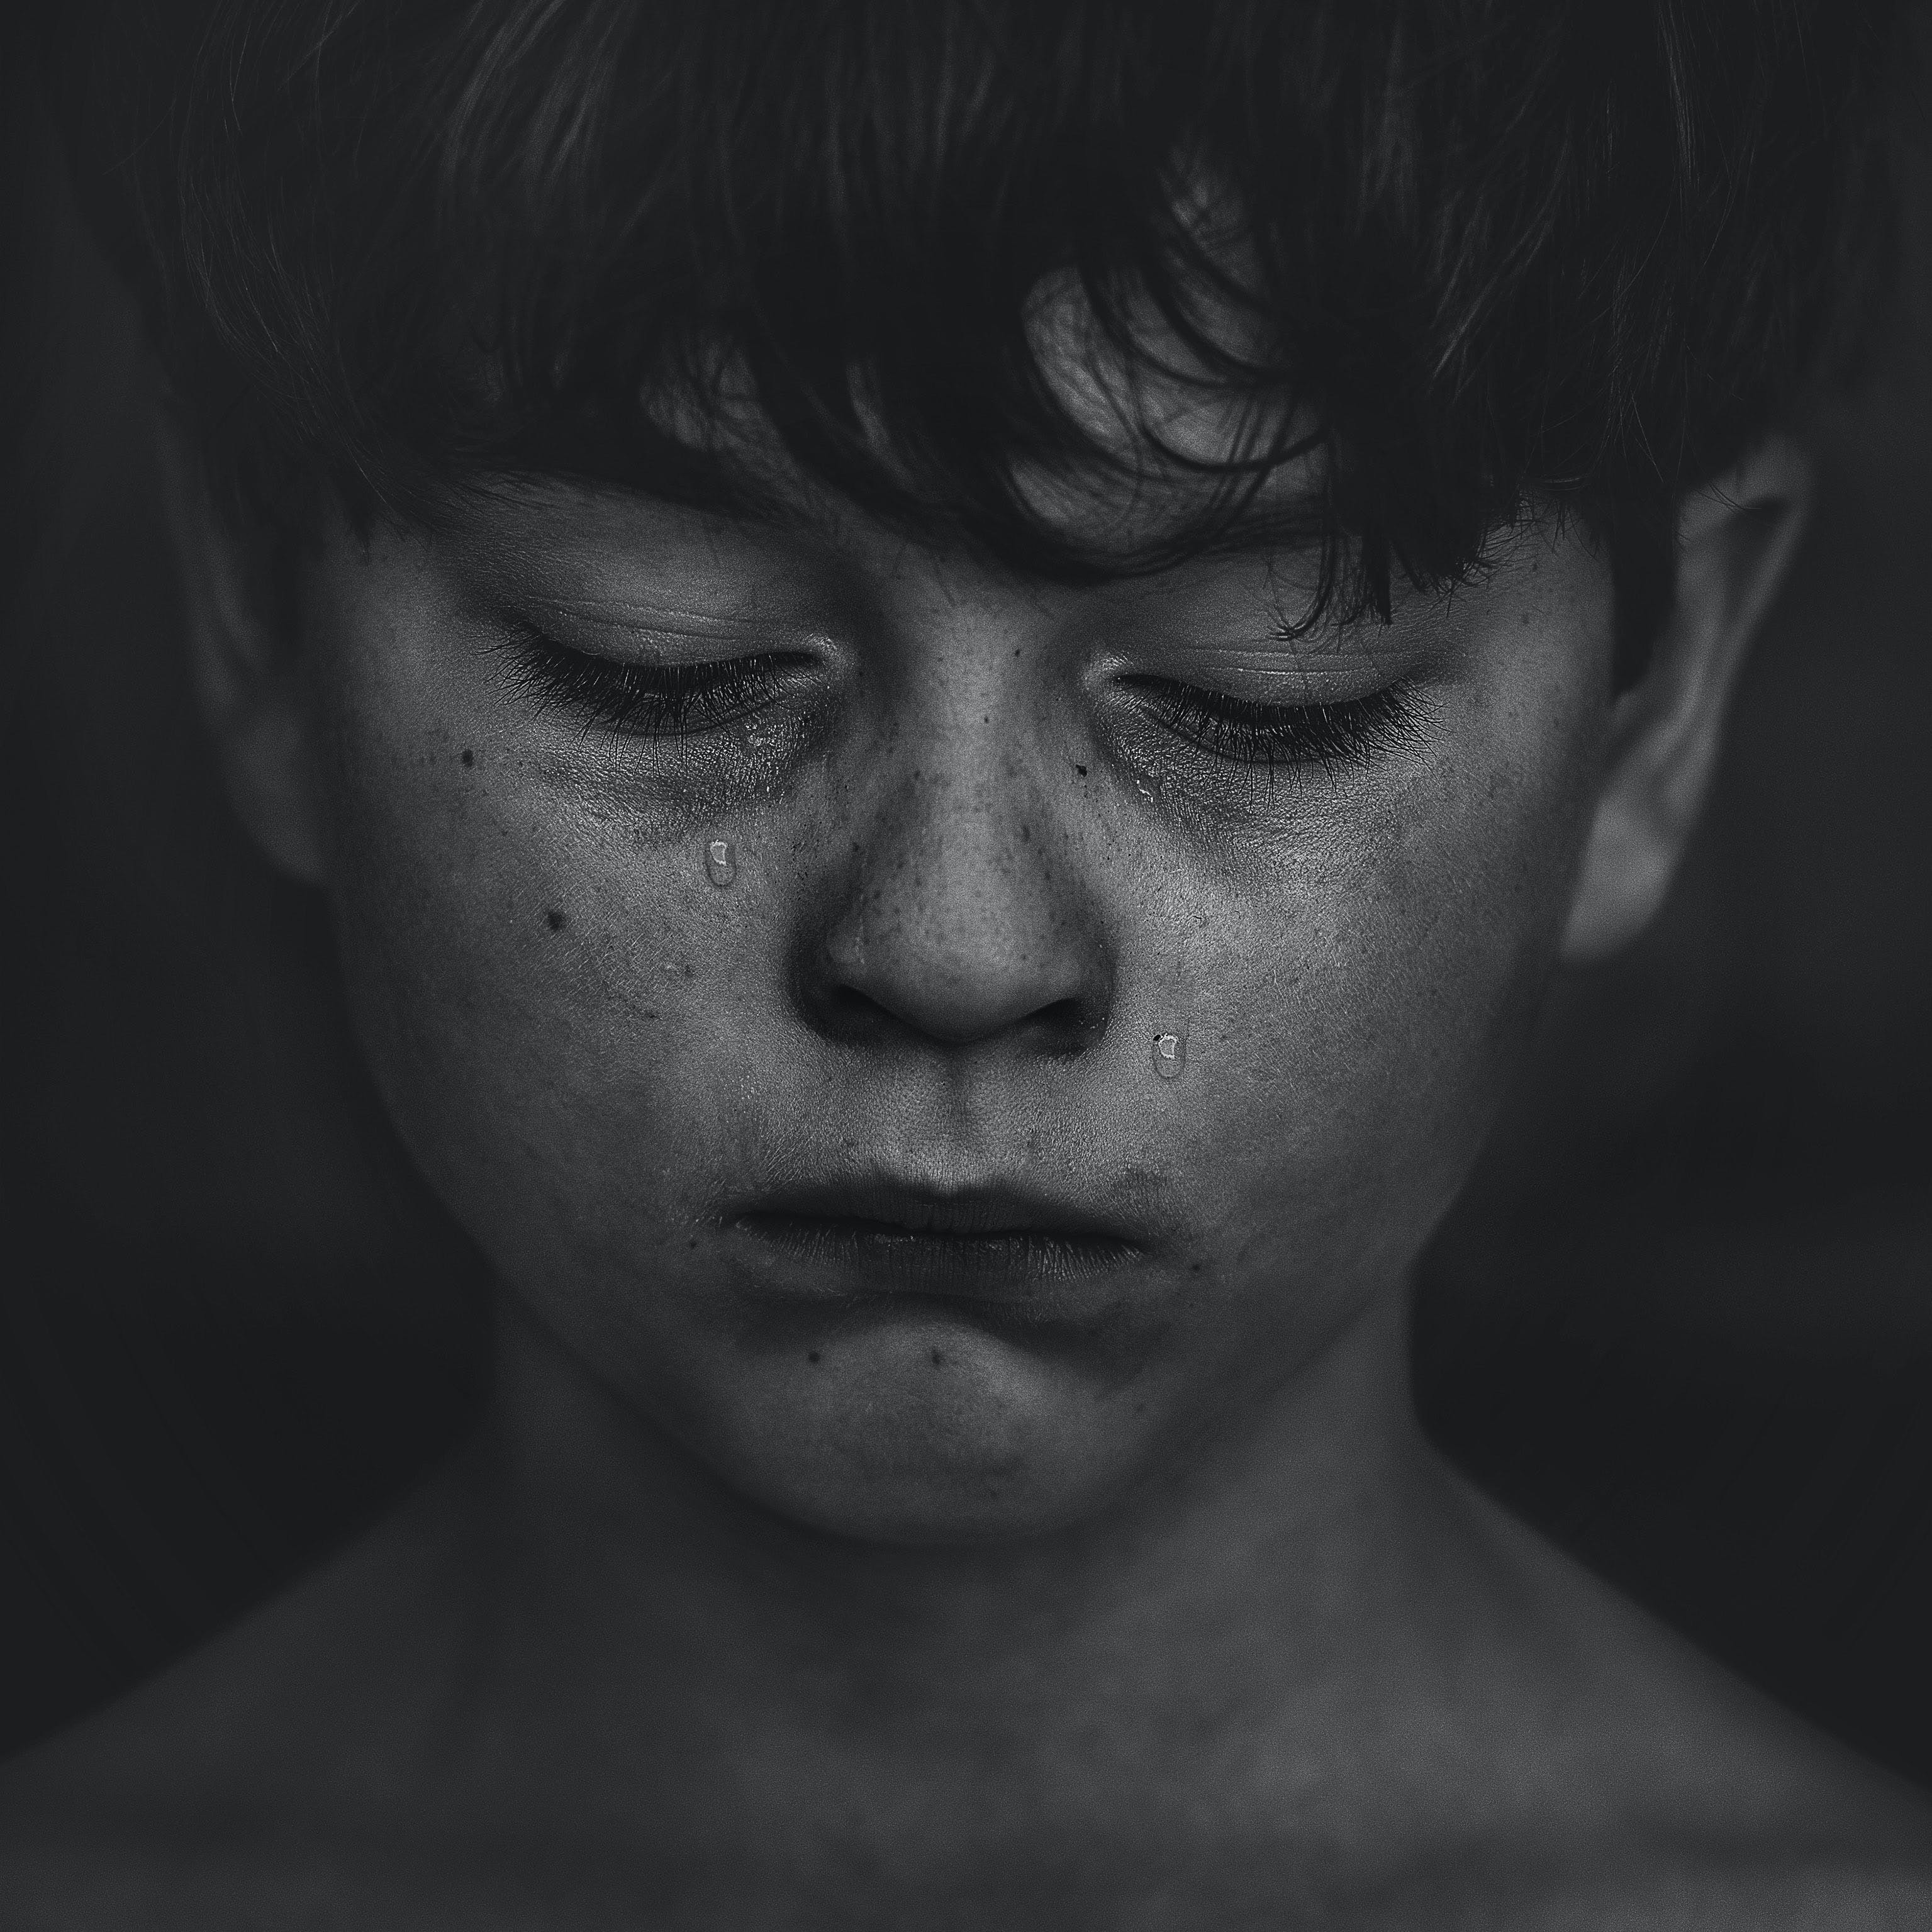 Black-haired Boy Crying